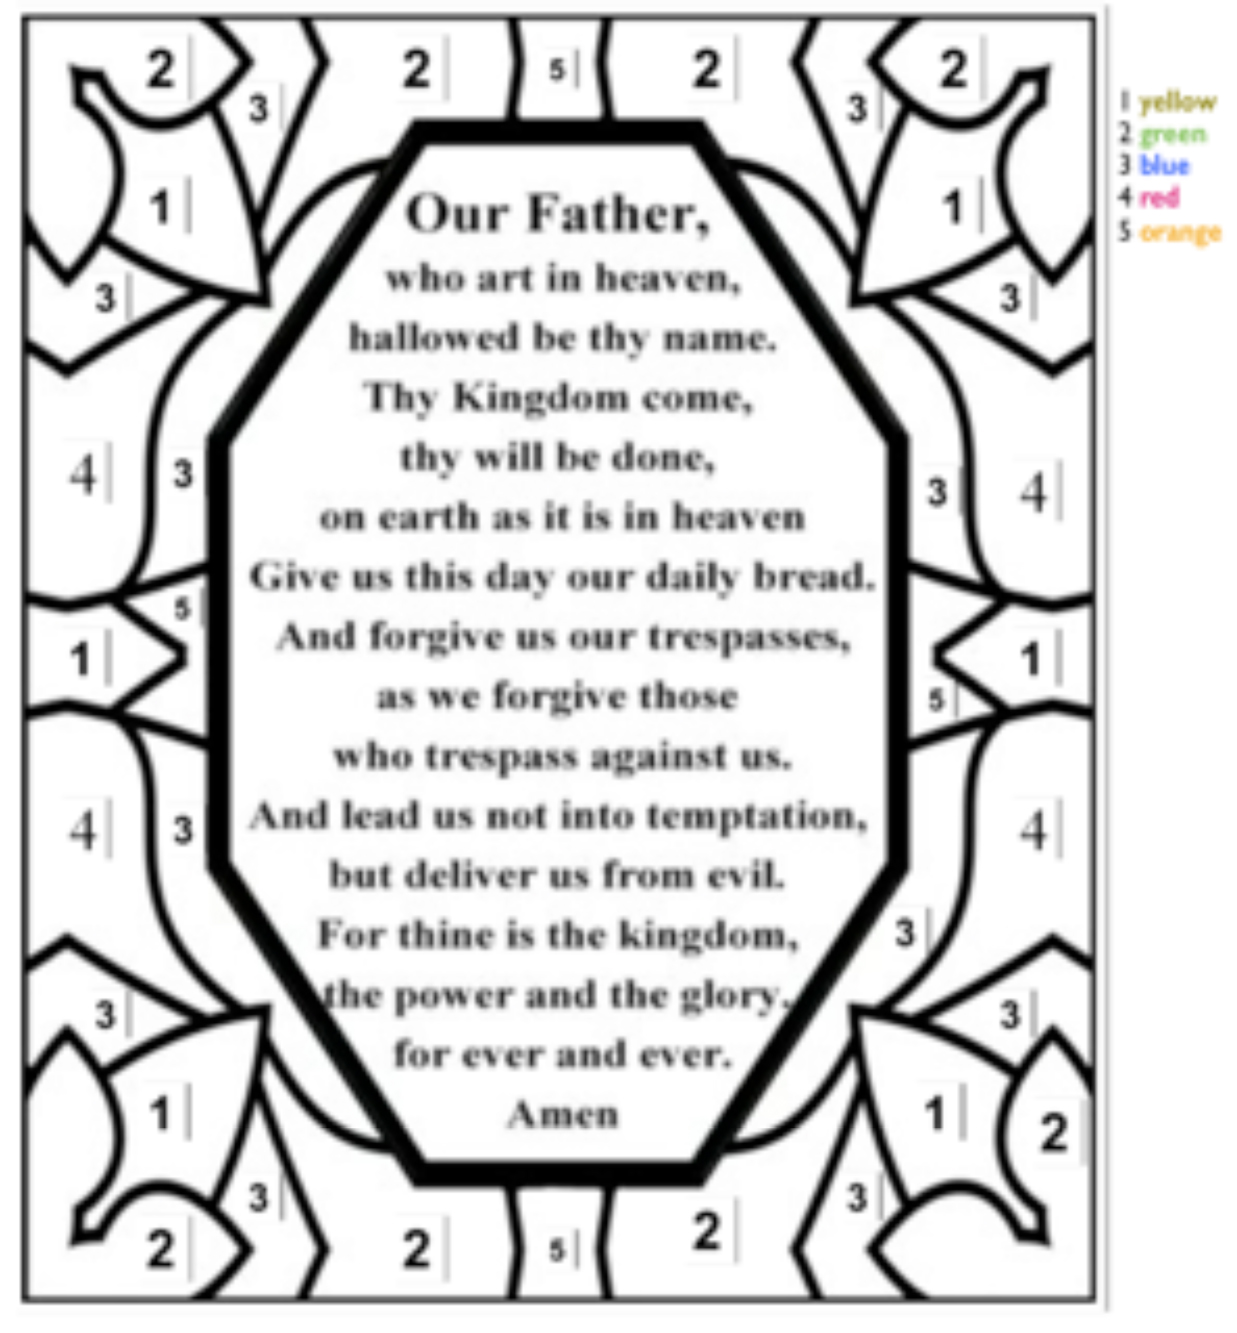 God hears our prayers coloring pages ~ Worship Tools for Children - Association of Presbyterian Church Educators